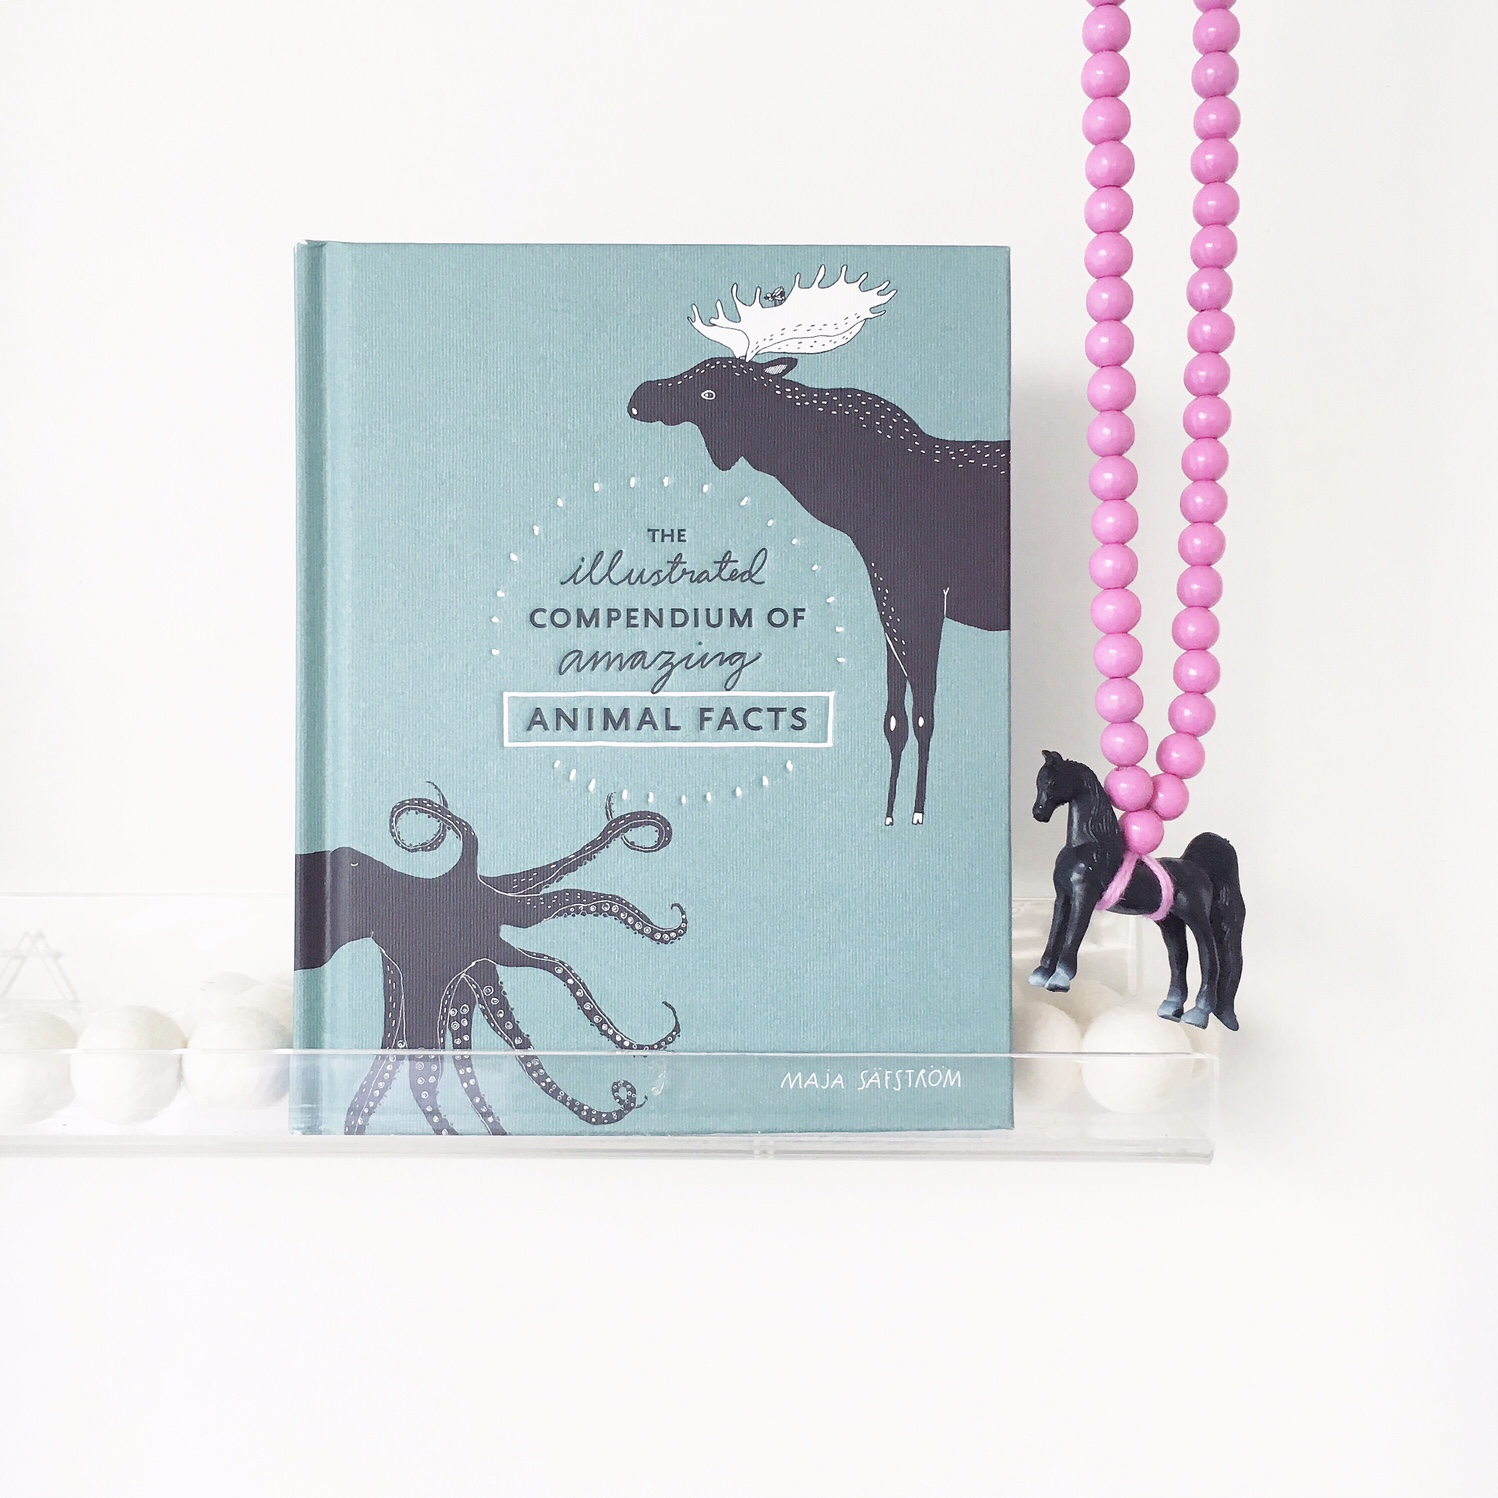 Book by Maja Safstrom. Purchased through The Little Vikings. Necklace also The Little Vikings.